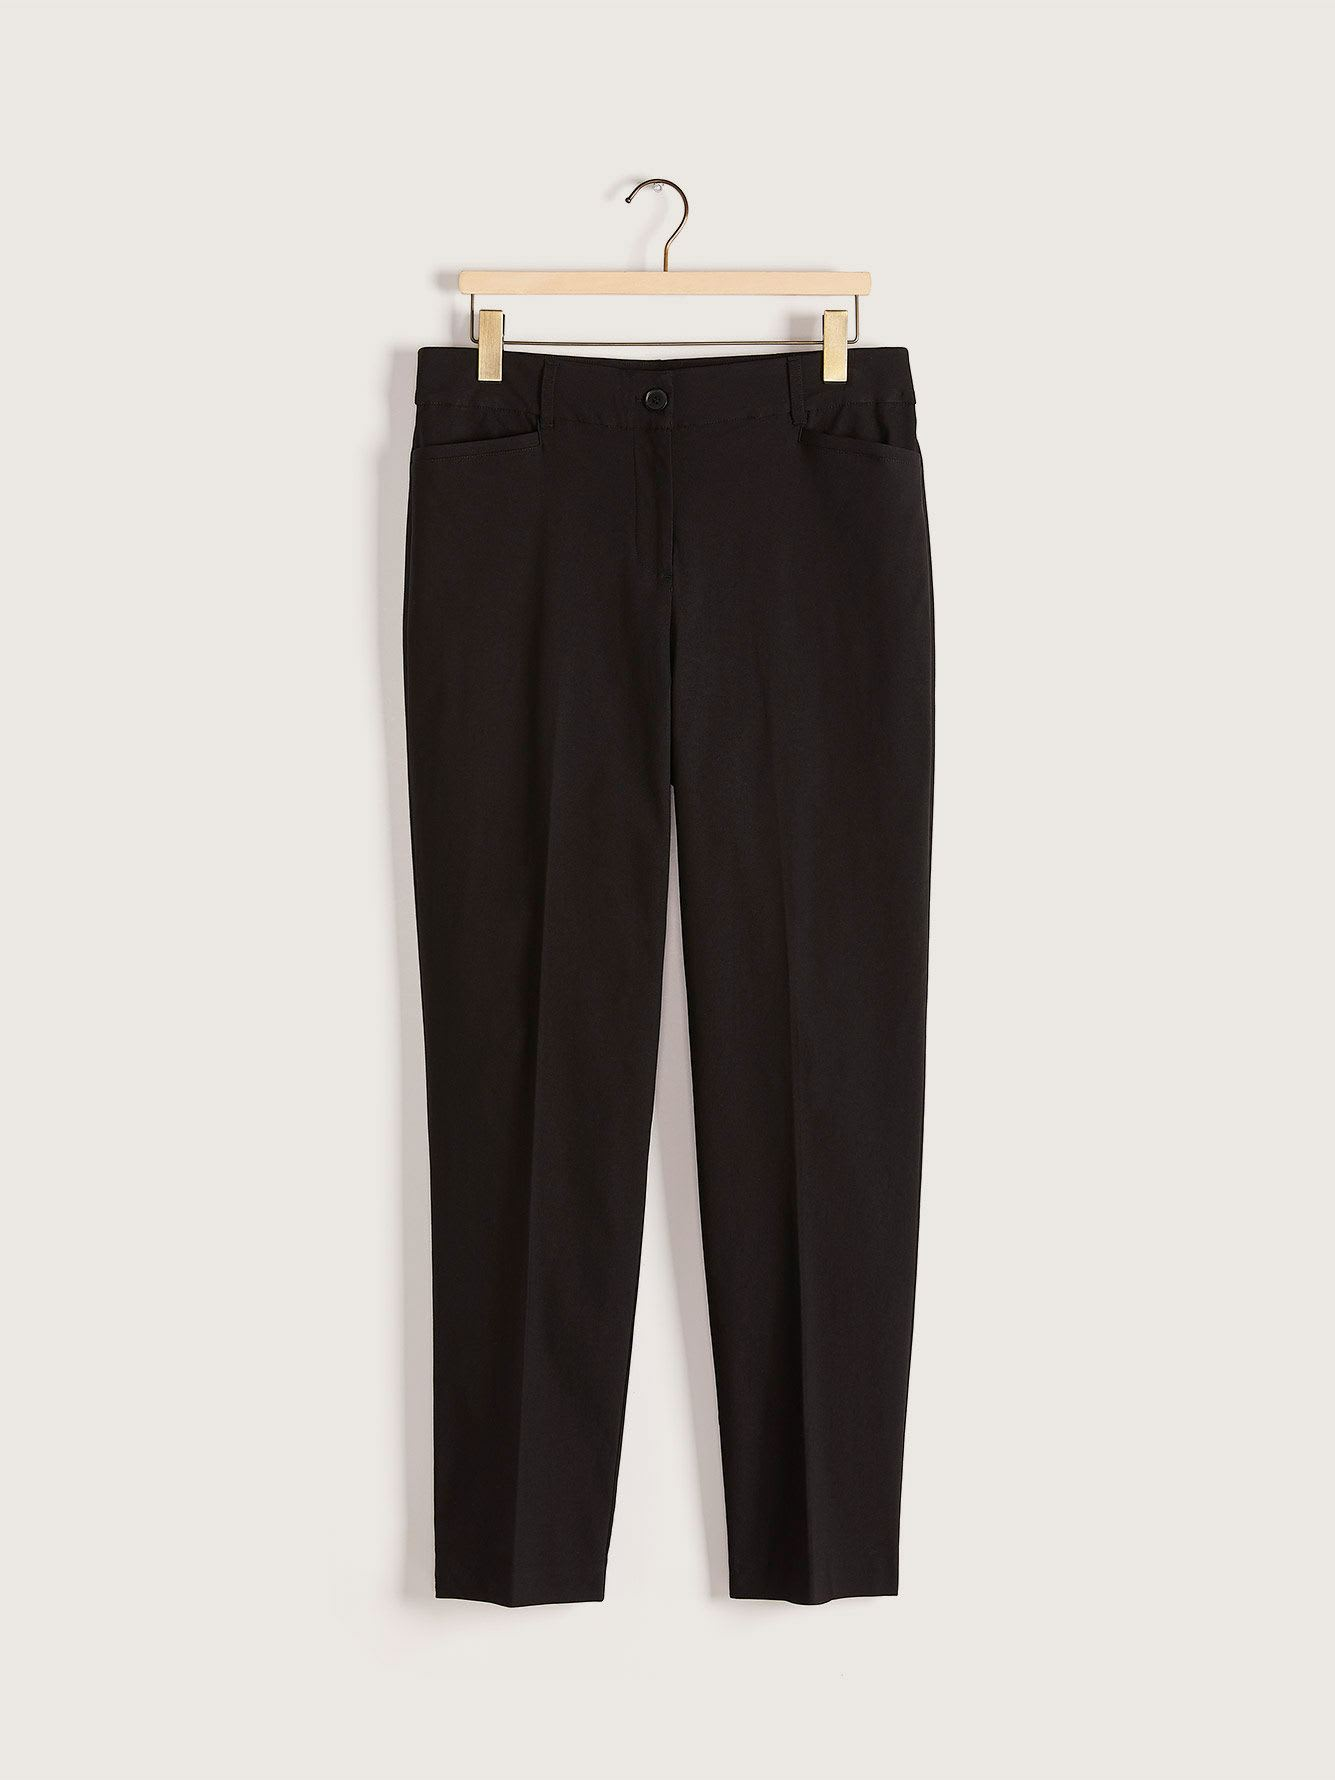 Black Straight Leg Pant - In Every Story